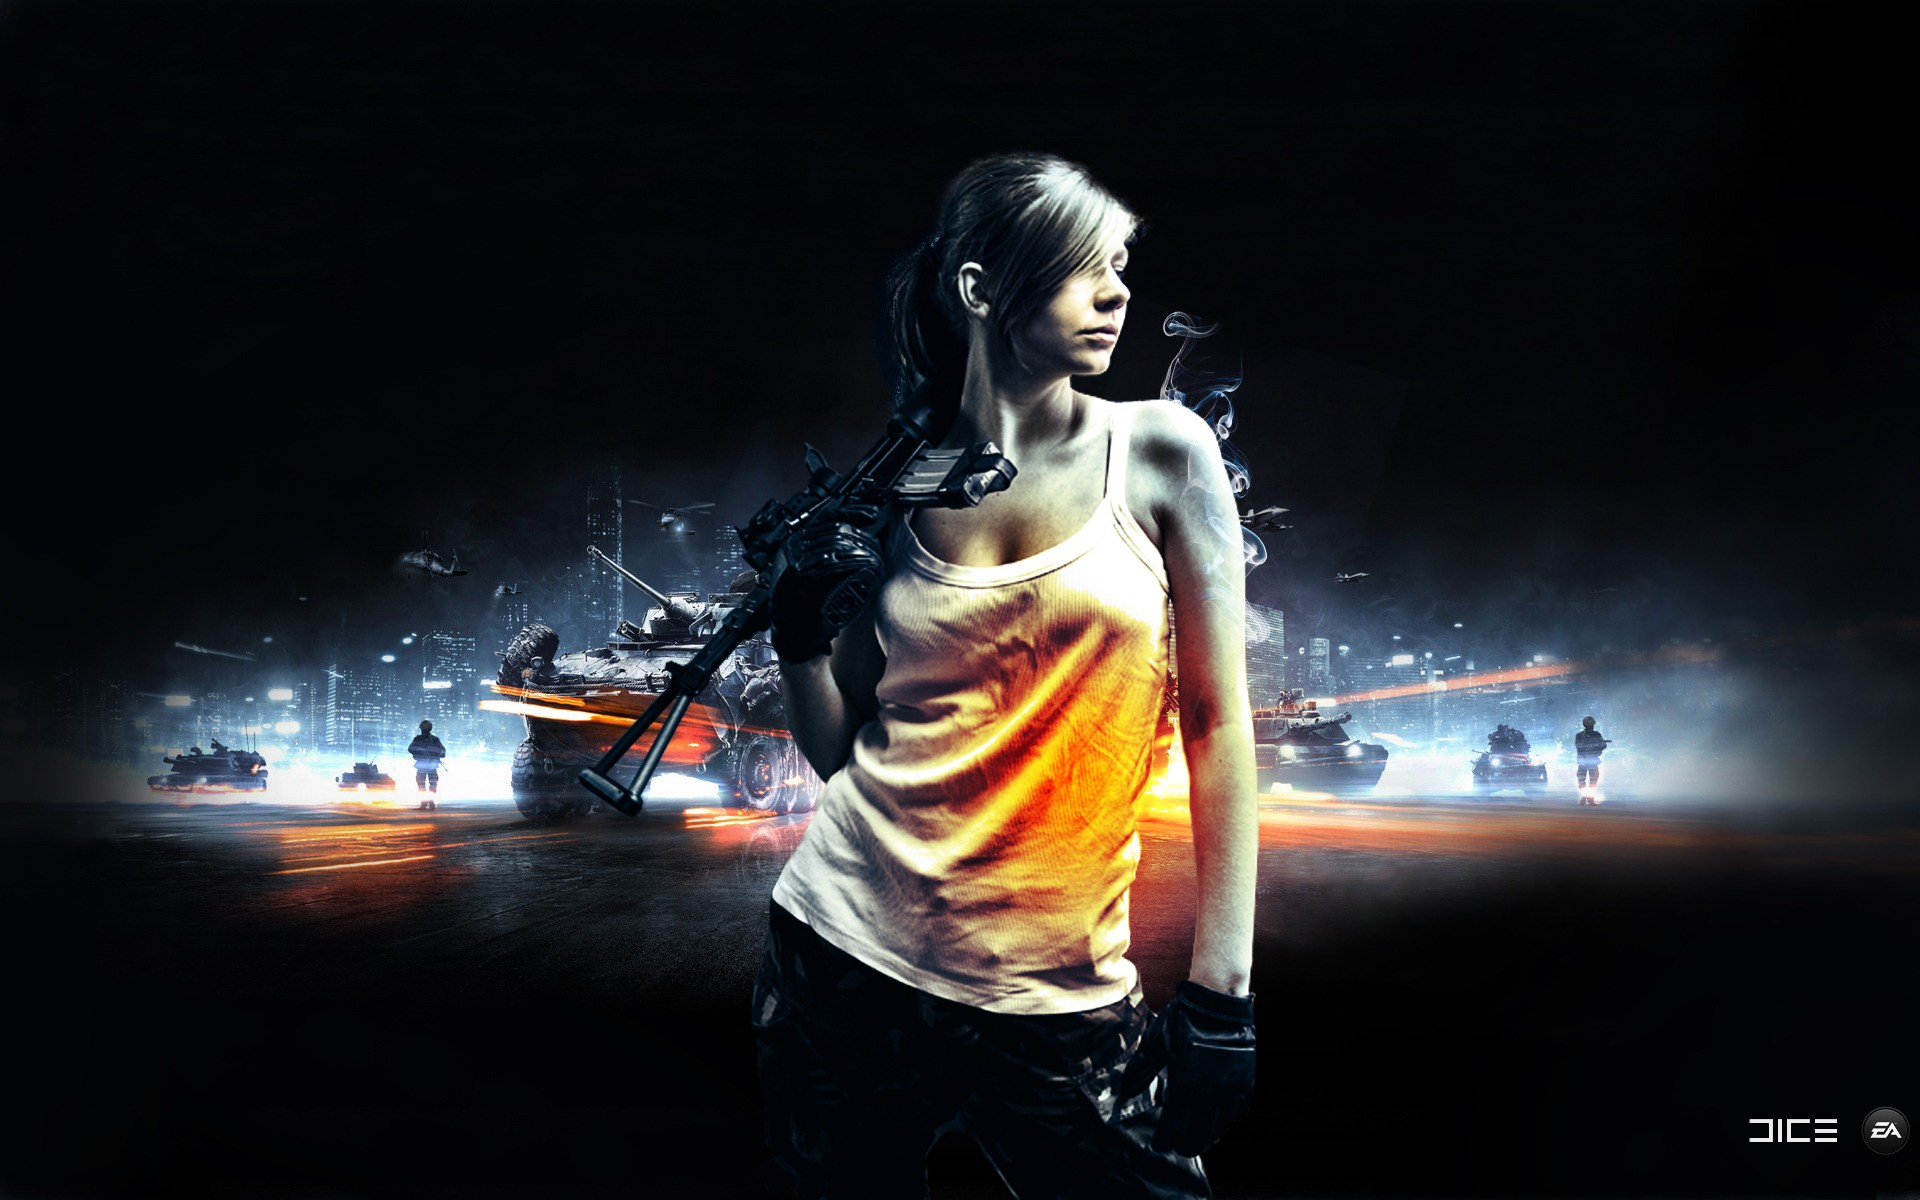 191 battlefield 3 hd wallpapers backgrounds wallpaper for Wallpaper interactivo